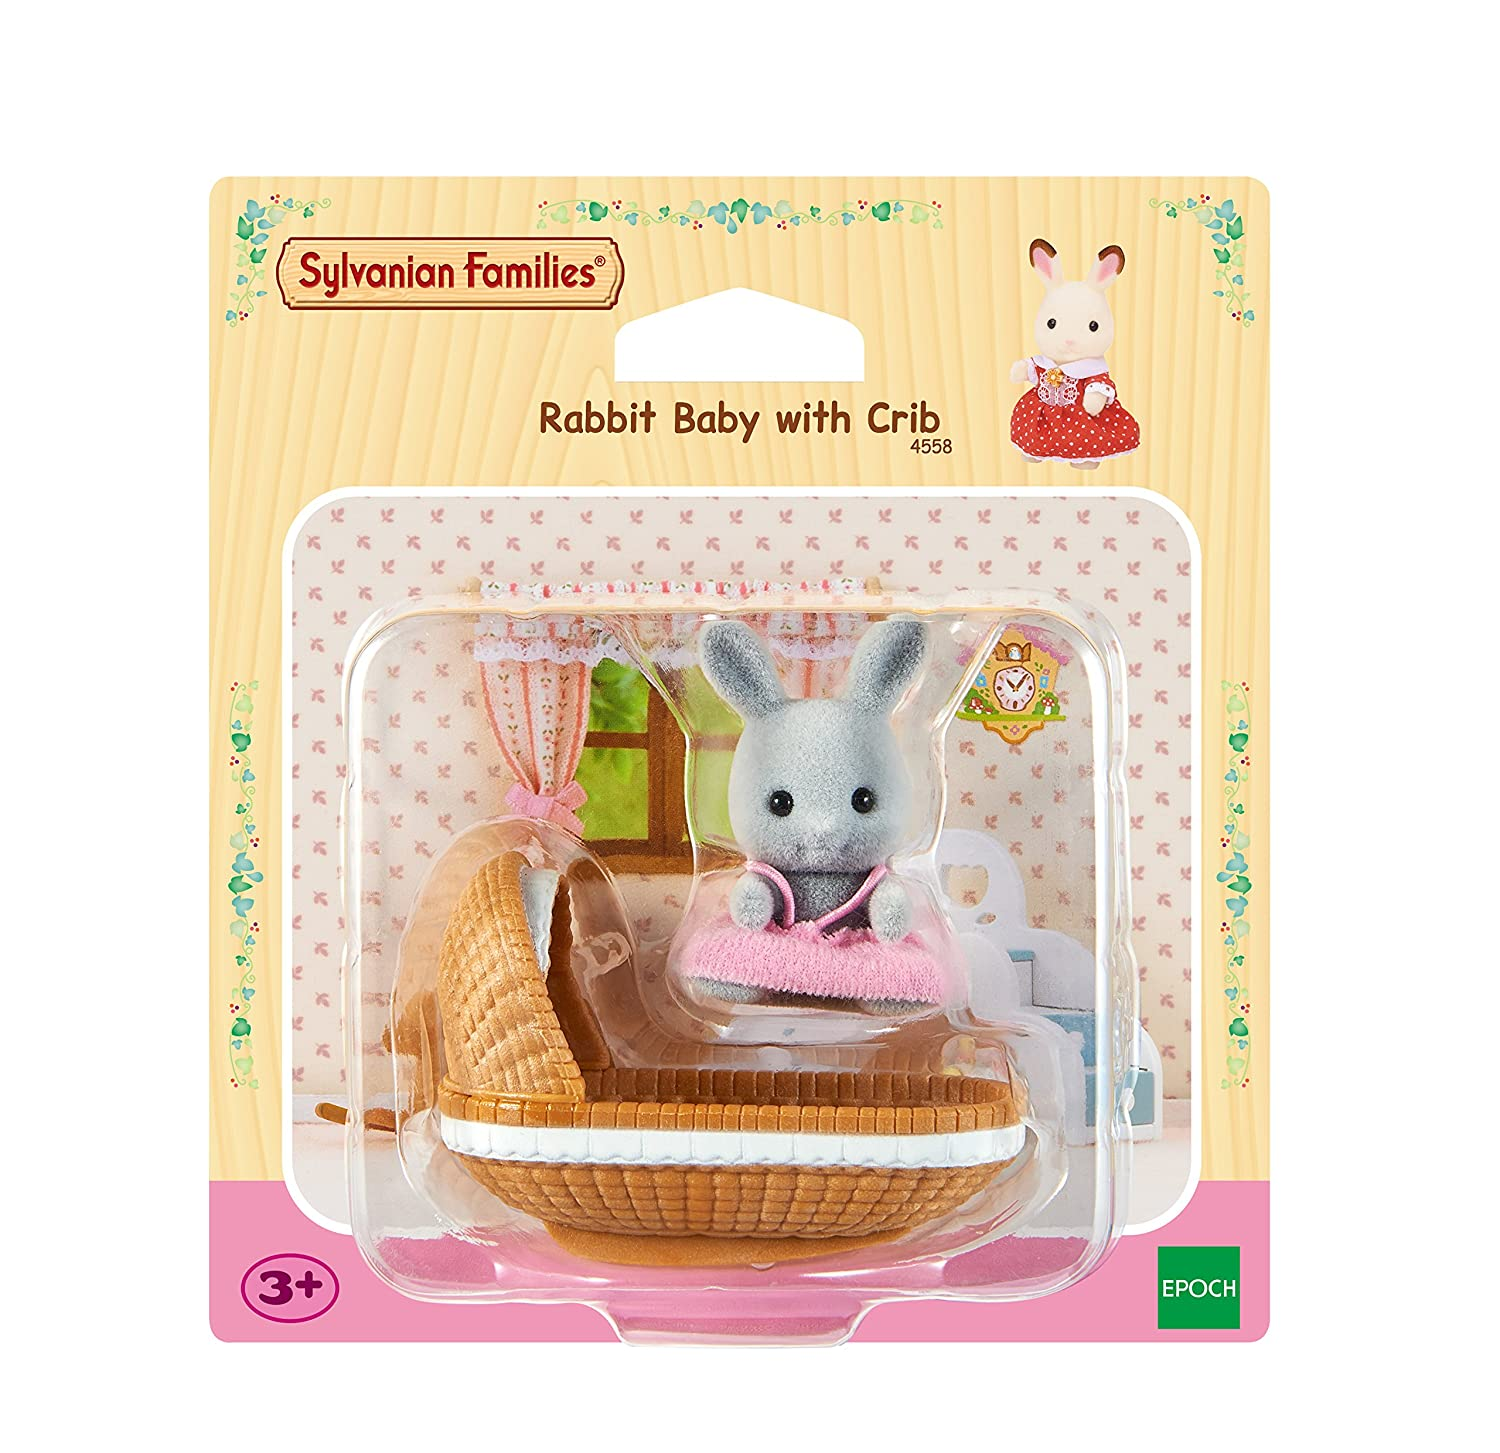 Amazon.es: SYLVANIAN FAMILIES Rabbit Baby with Crib Mini muñecas y Accesorios Epoch 4558: Juguetes y juegos